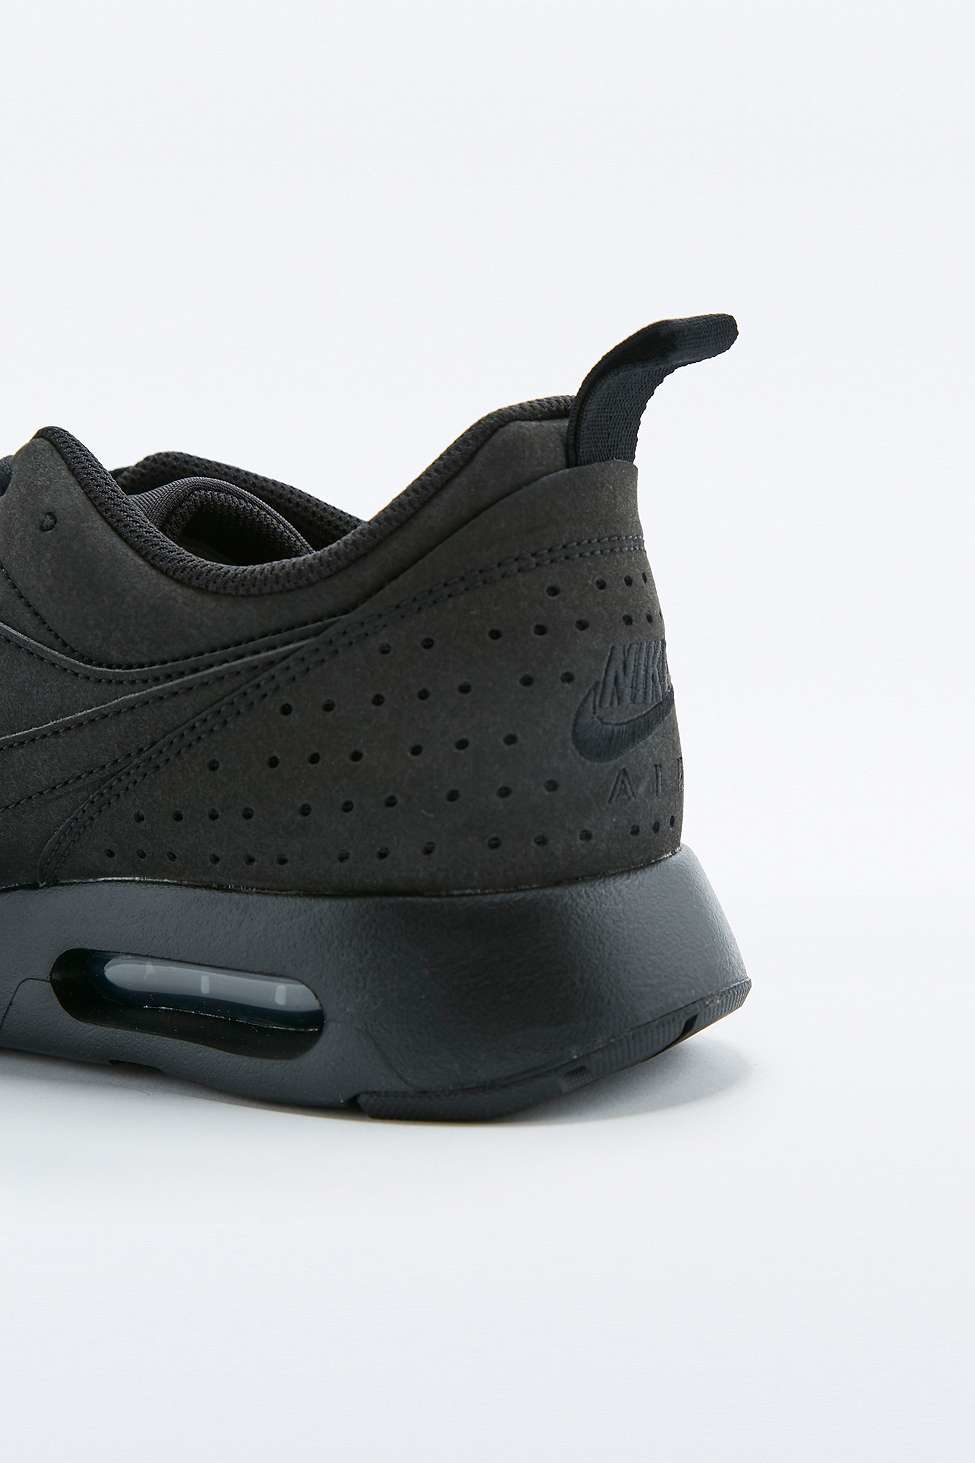 Nike Air Max Tavas Black Leather Trainers In Black For Men